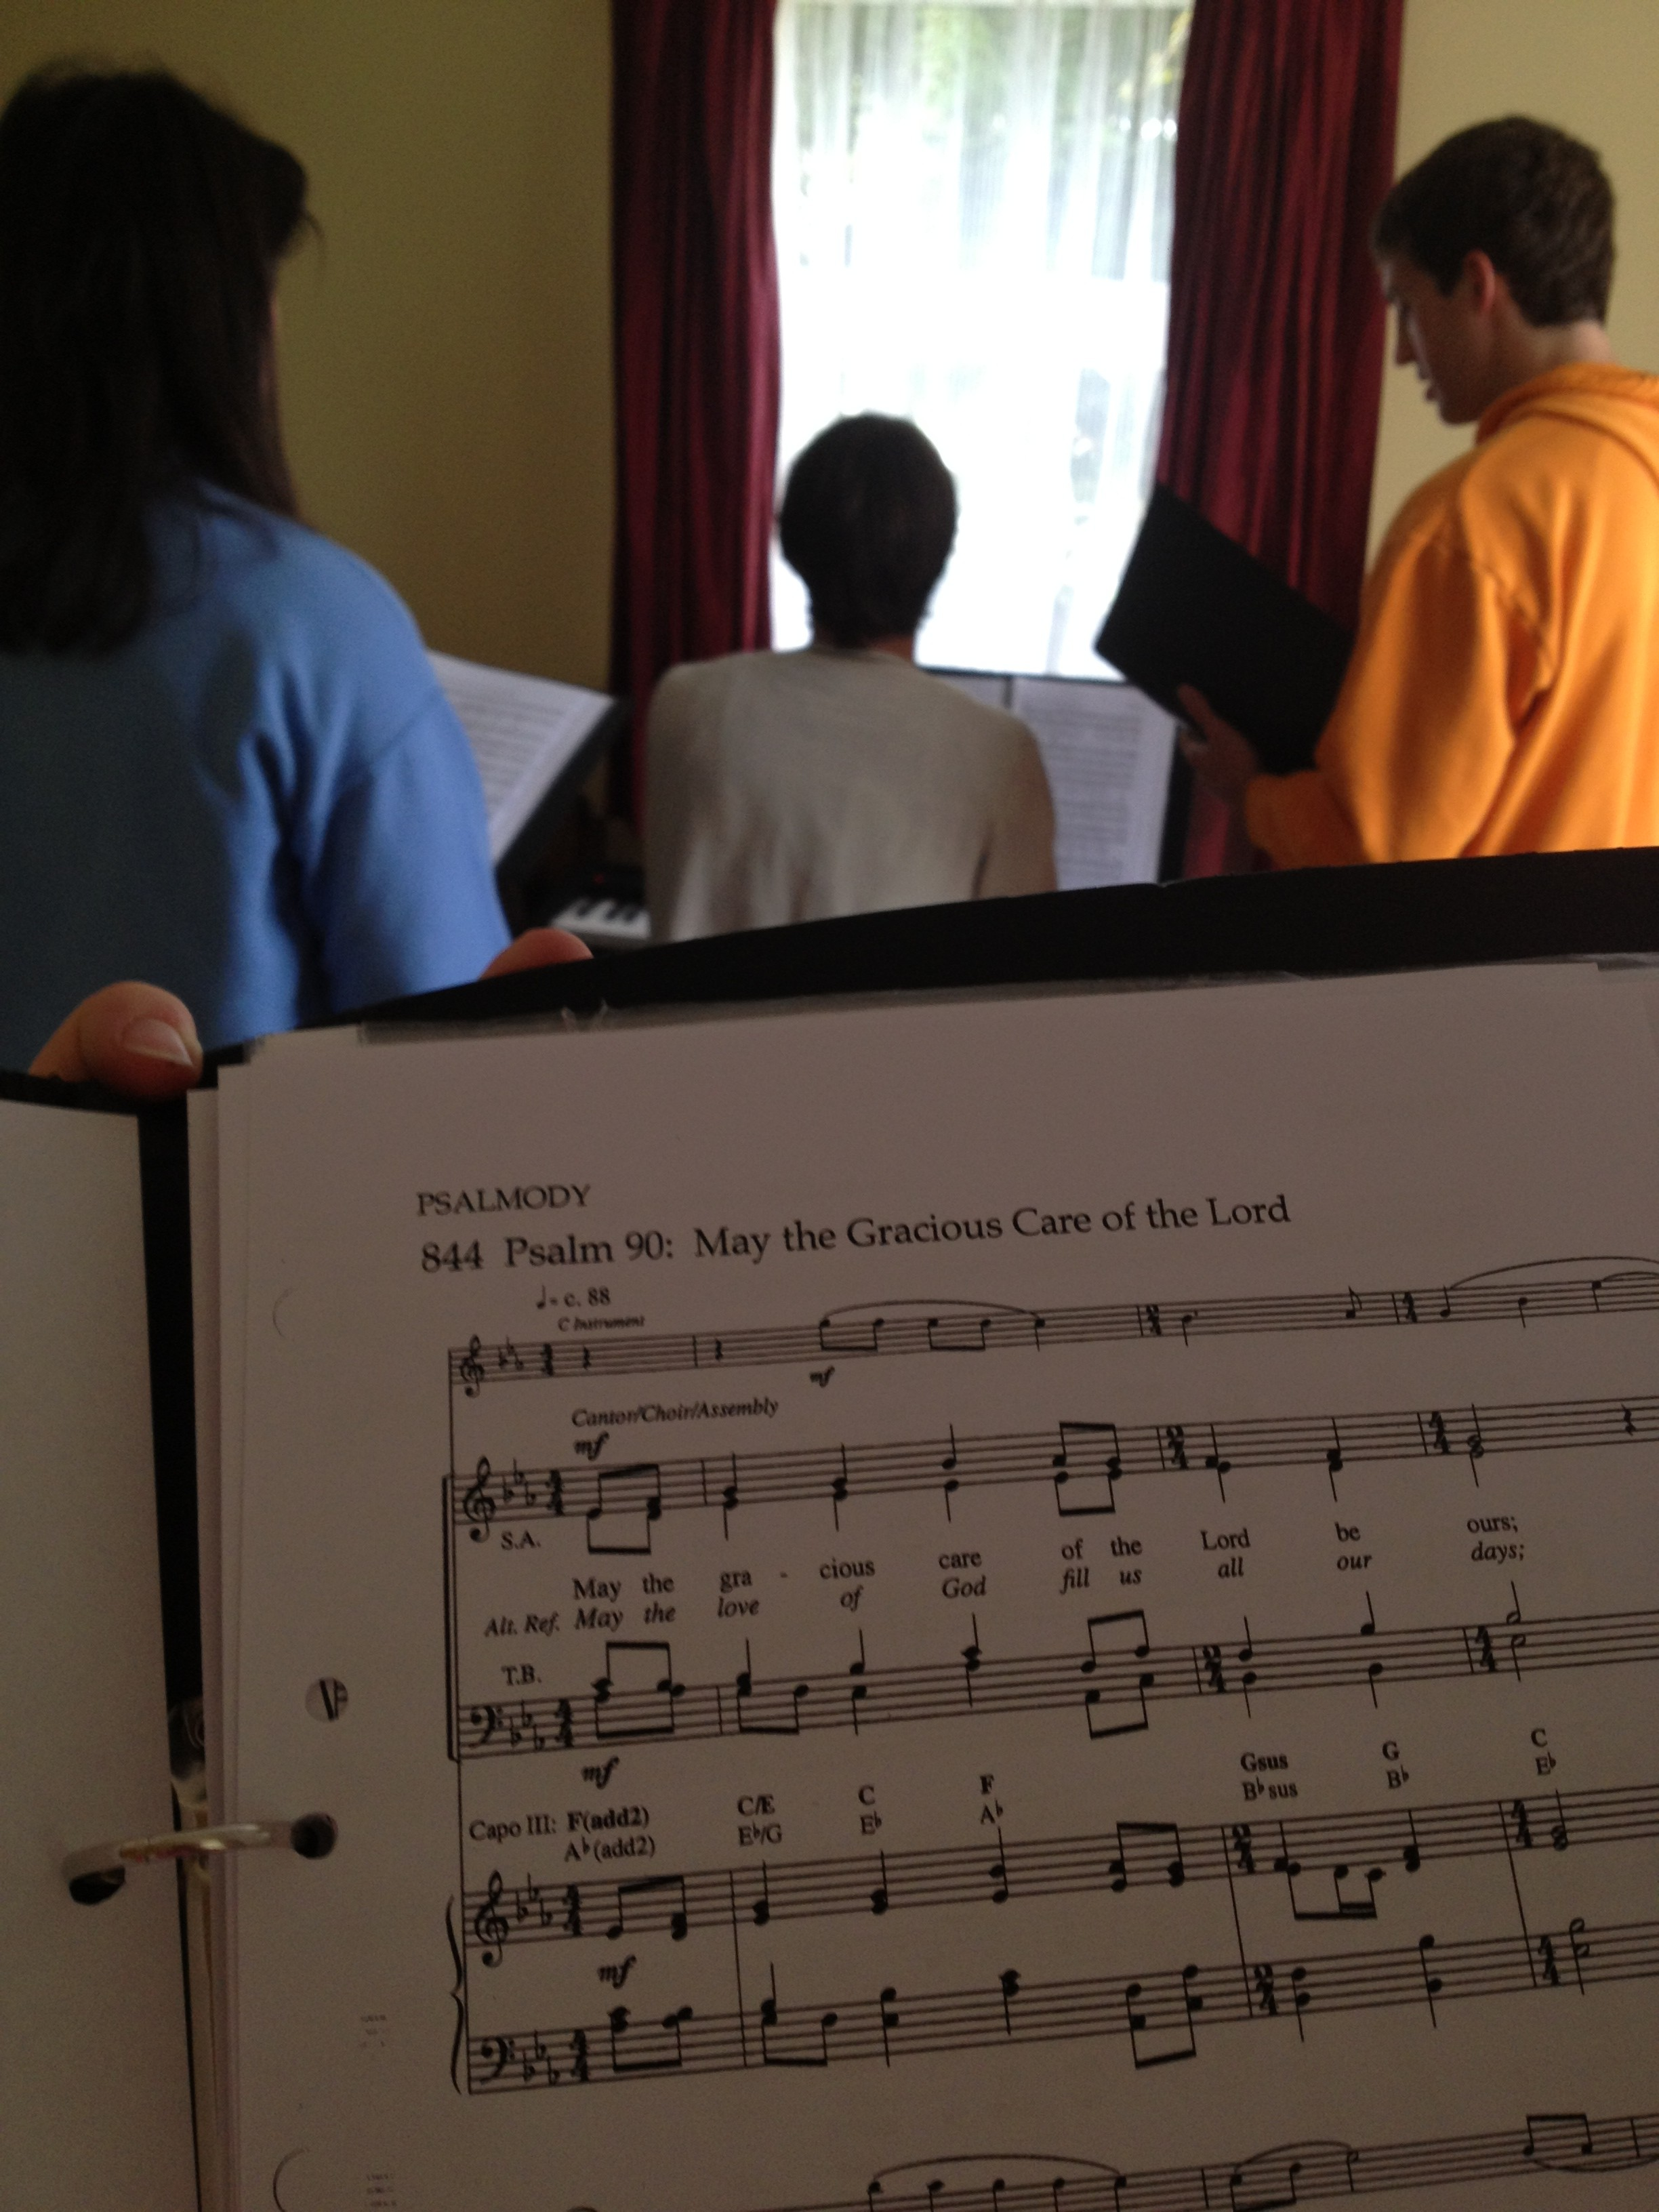 It's really not uncommon for us to gather around the piano and practice music.  (Take a guess who's music we're working on here!)